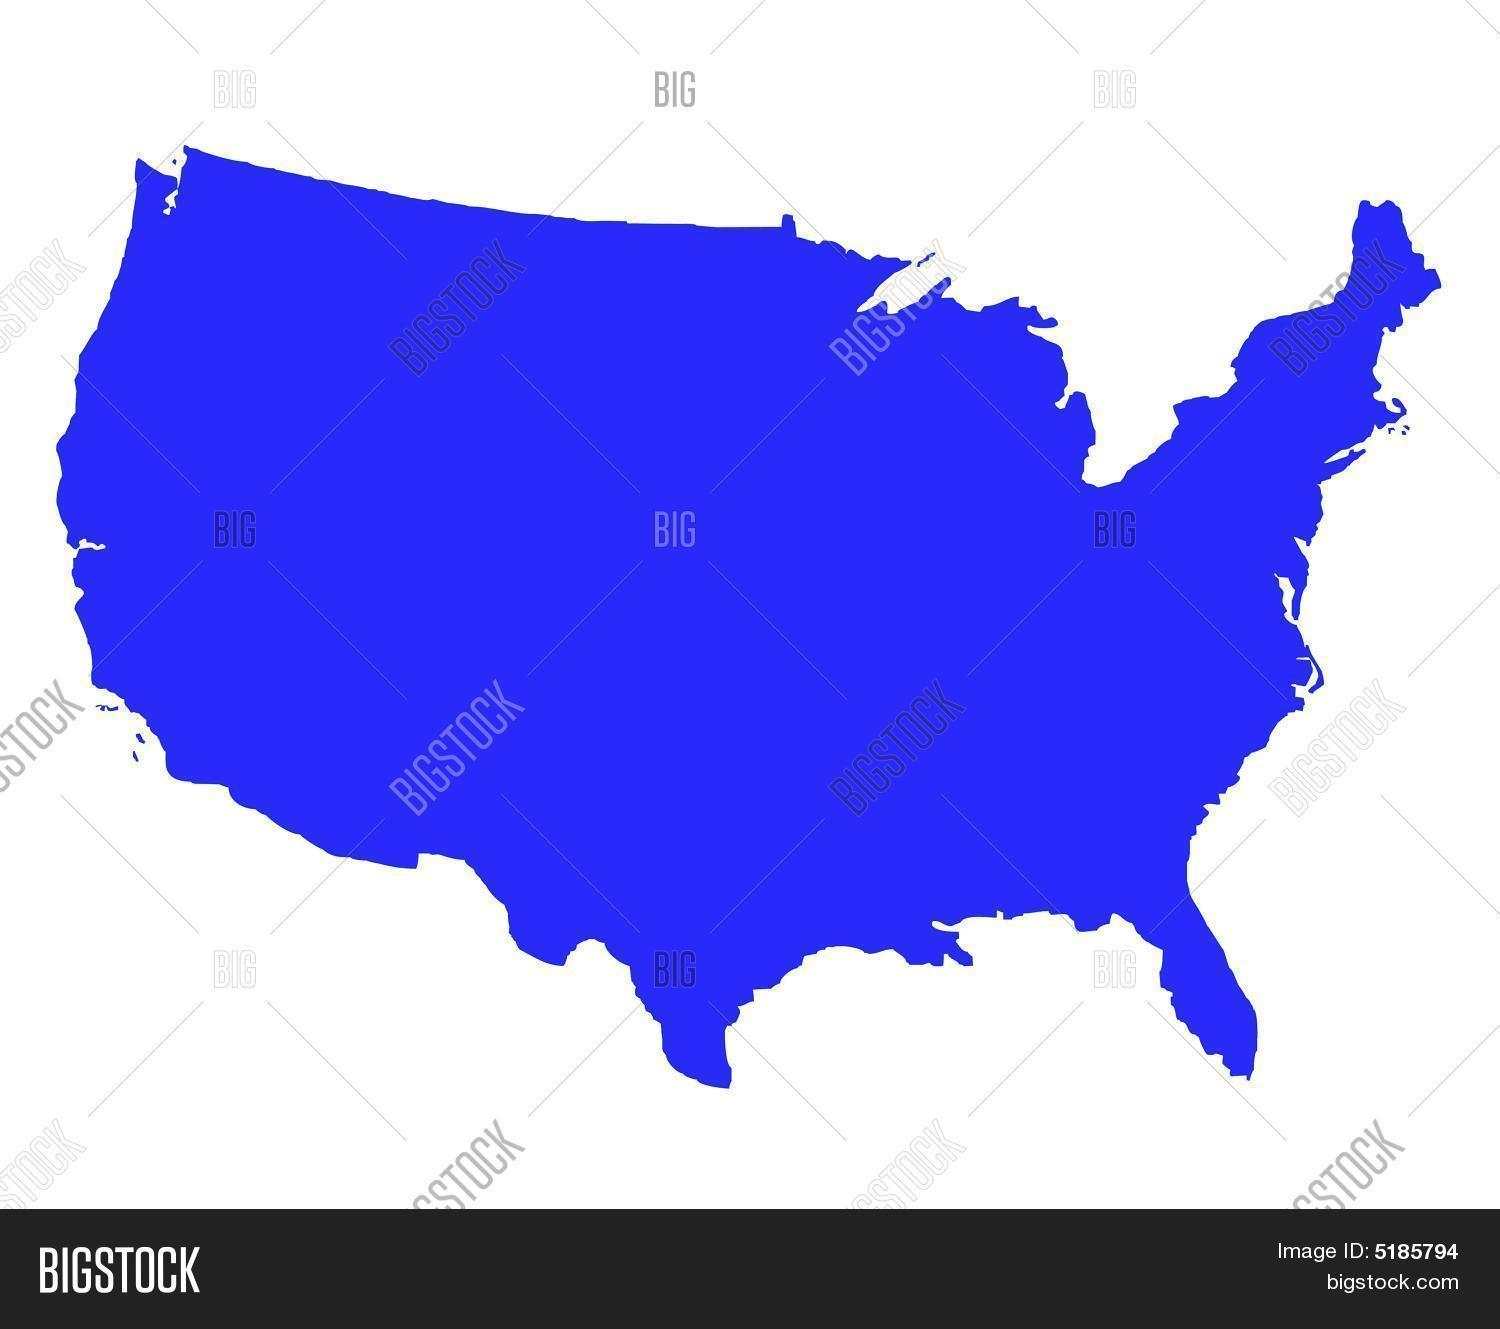 United States America Image & Photo (Free Trial) | Bigstock